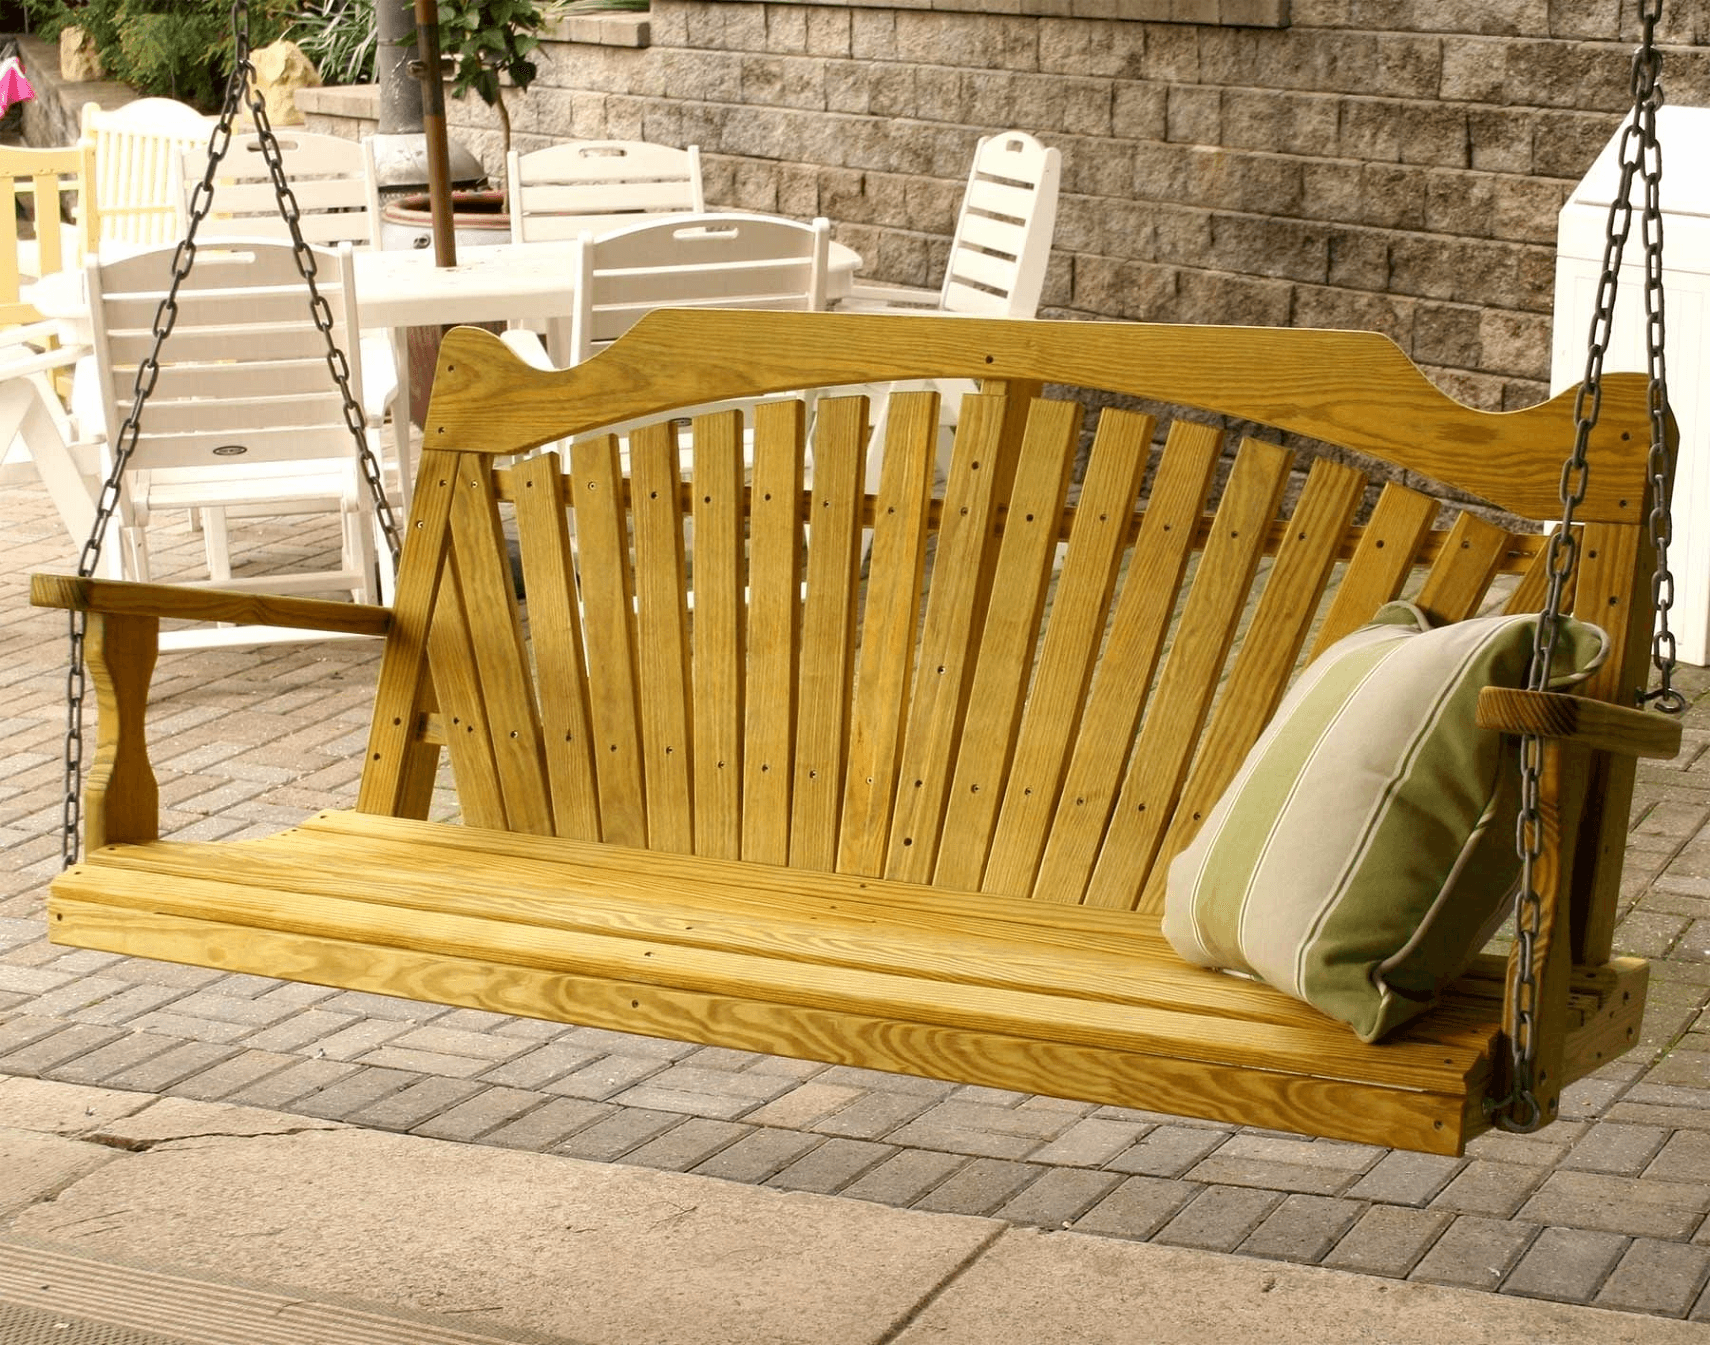 living bench with wooden patio belham stand sets maumee porch picture swings in swing furniture set inspirations ohio supreme frightening back lounge richmond top straight outdoor